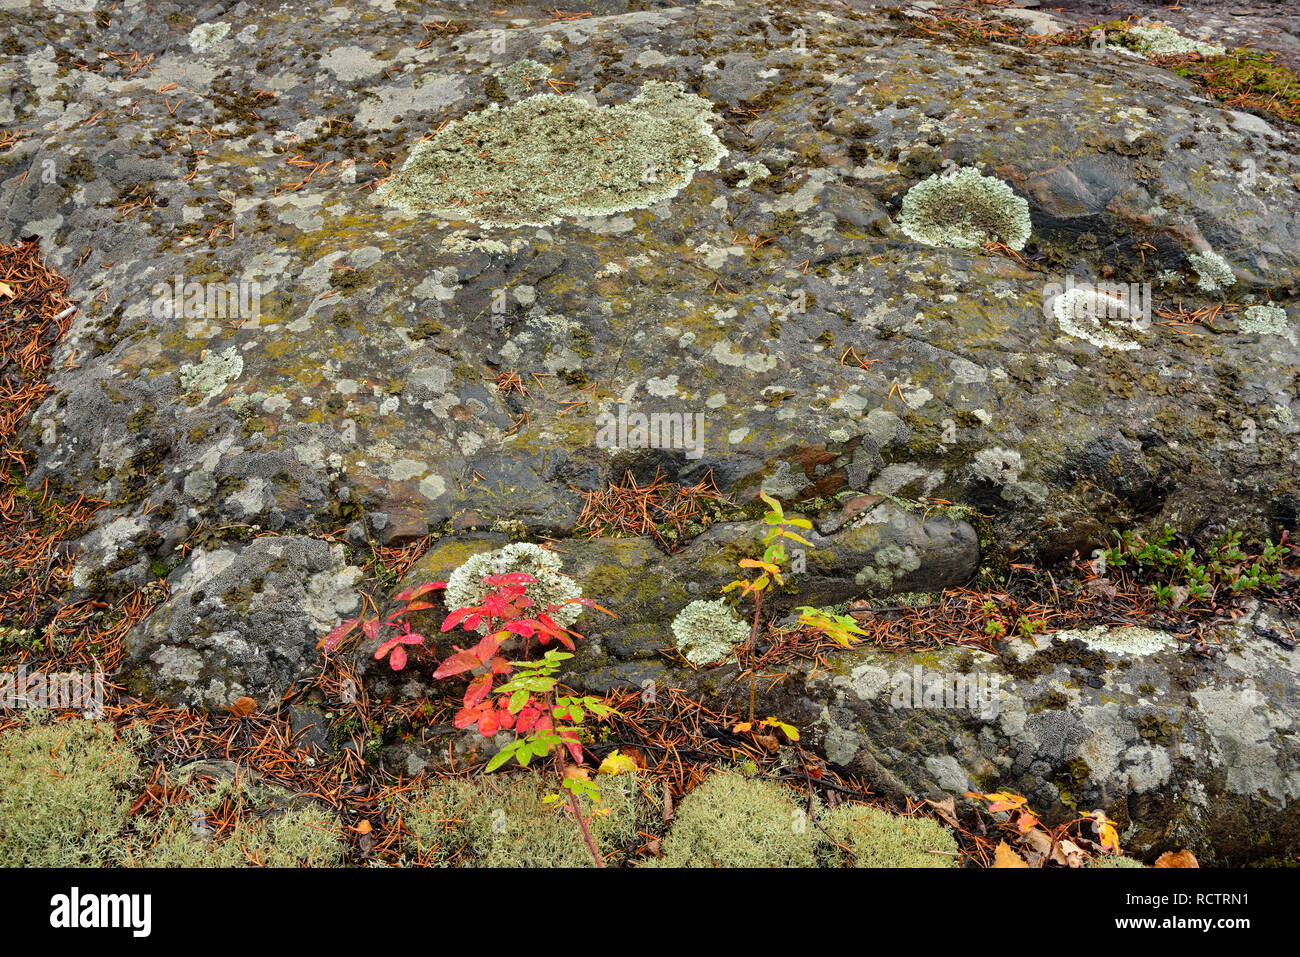 Precambrian shield granite with lichens and wild rose, Yellowknife, Northwest Territories, Canada - Stock Image